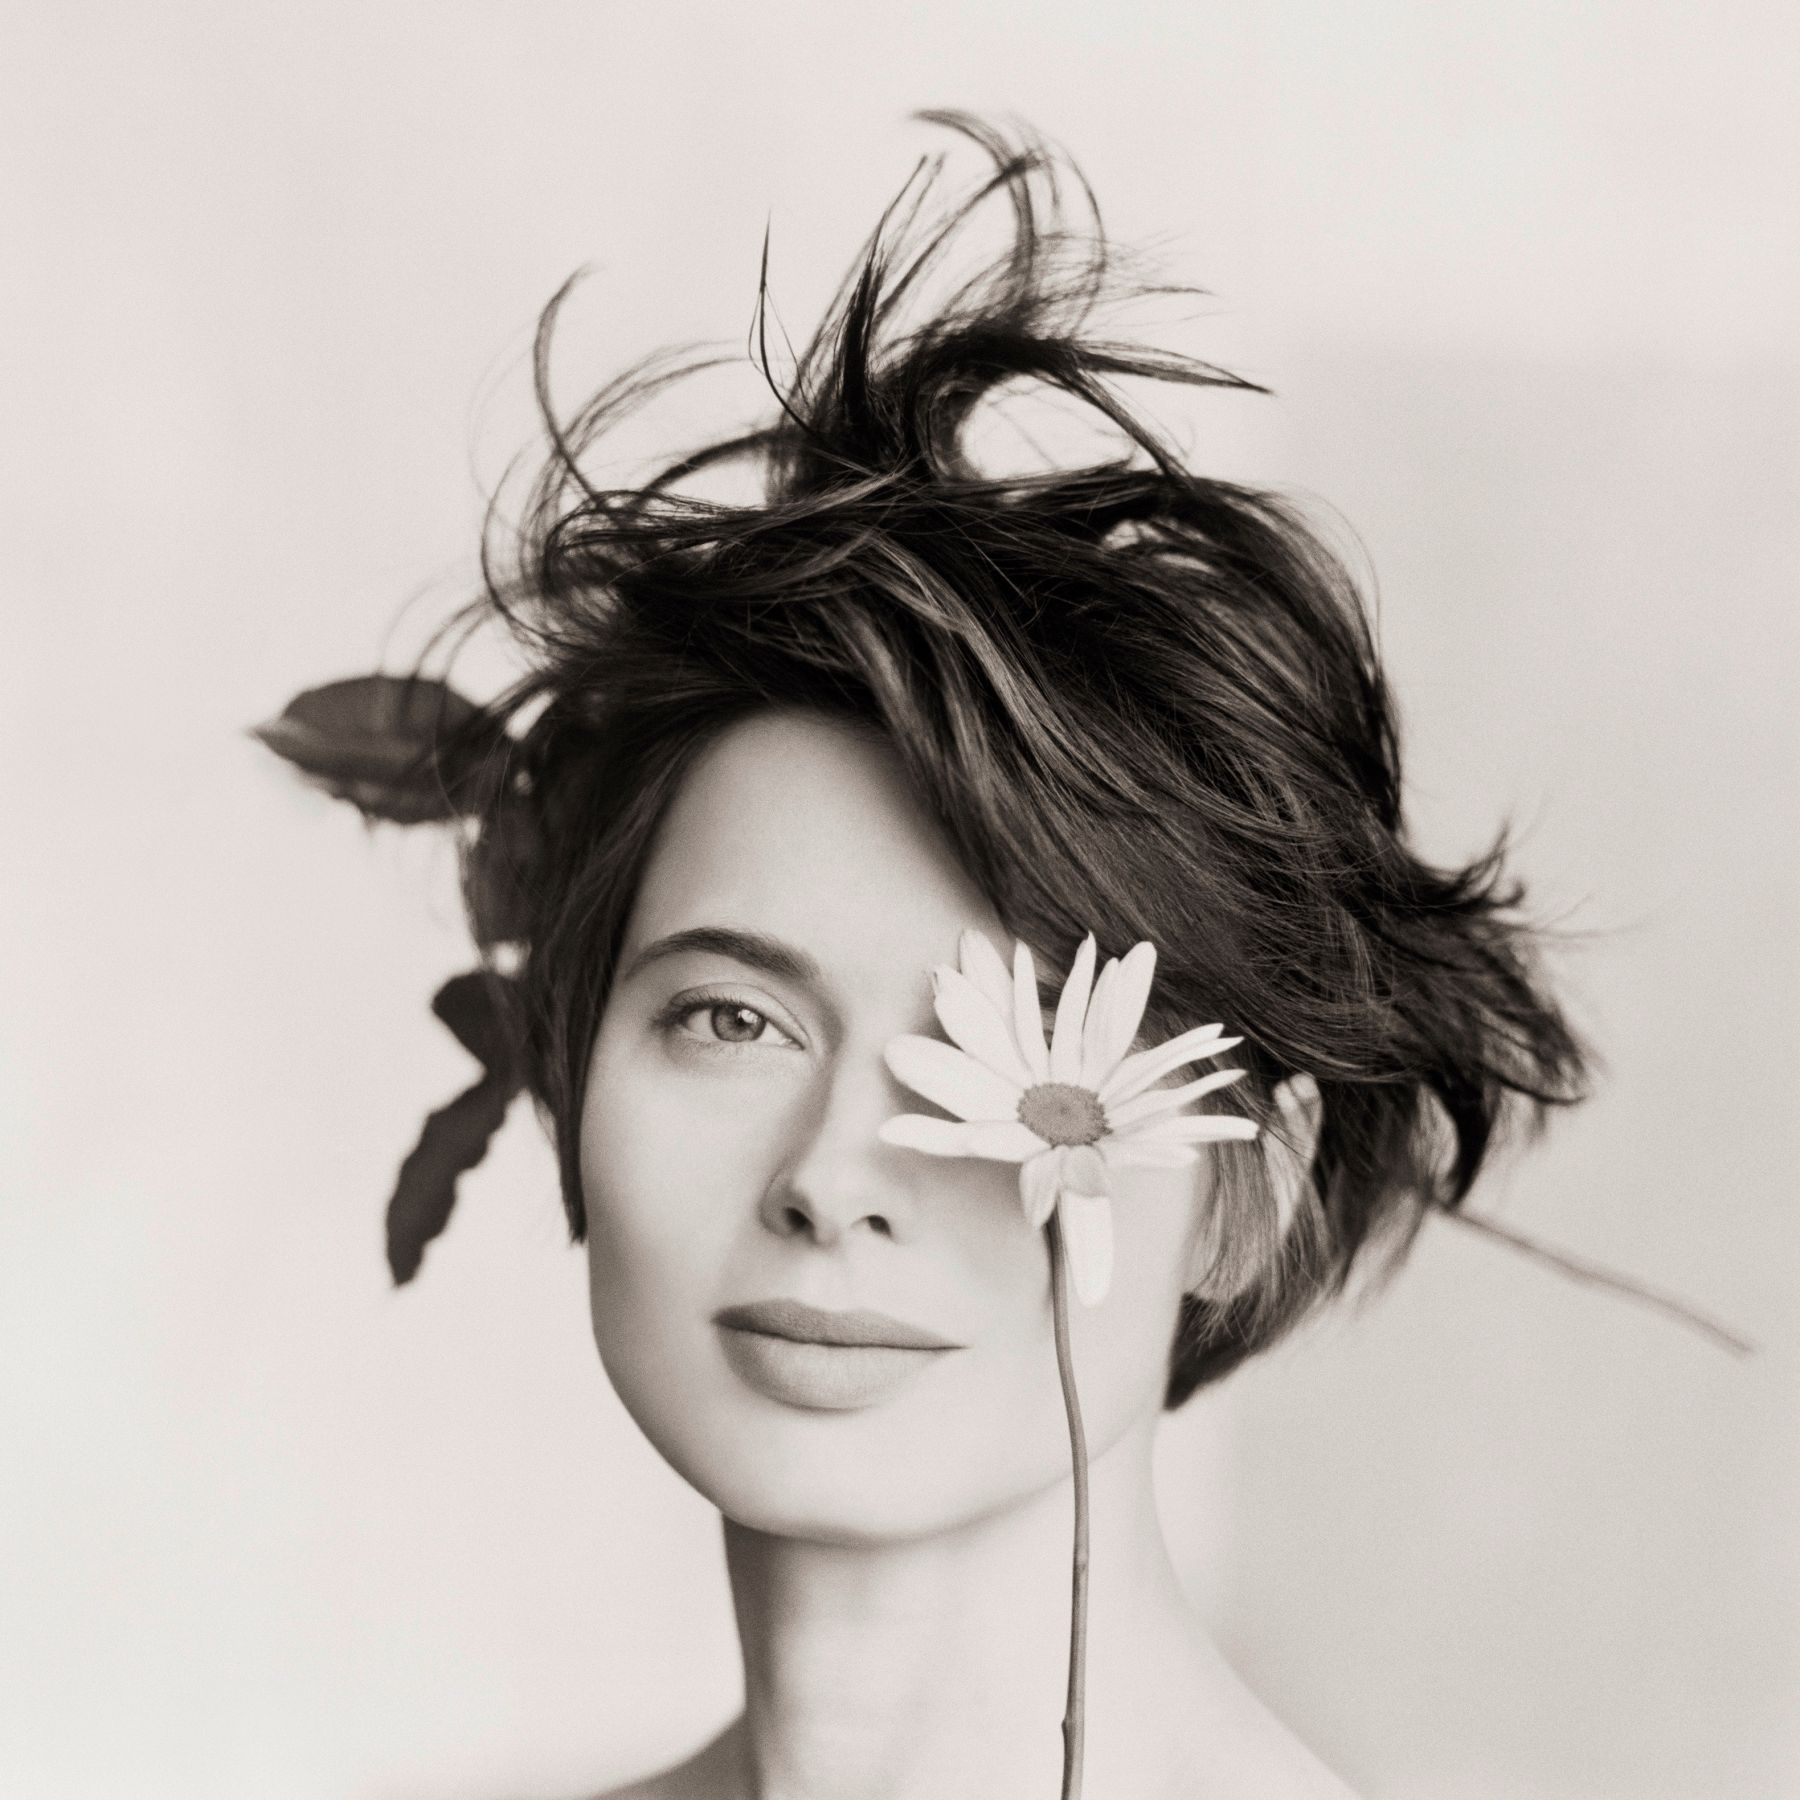 Isabella Rossellini, Daisy, New York, 1988, Combined Edition of 15